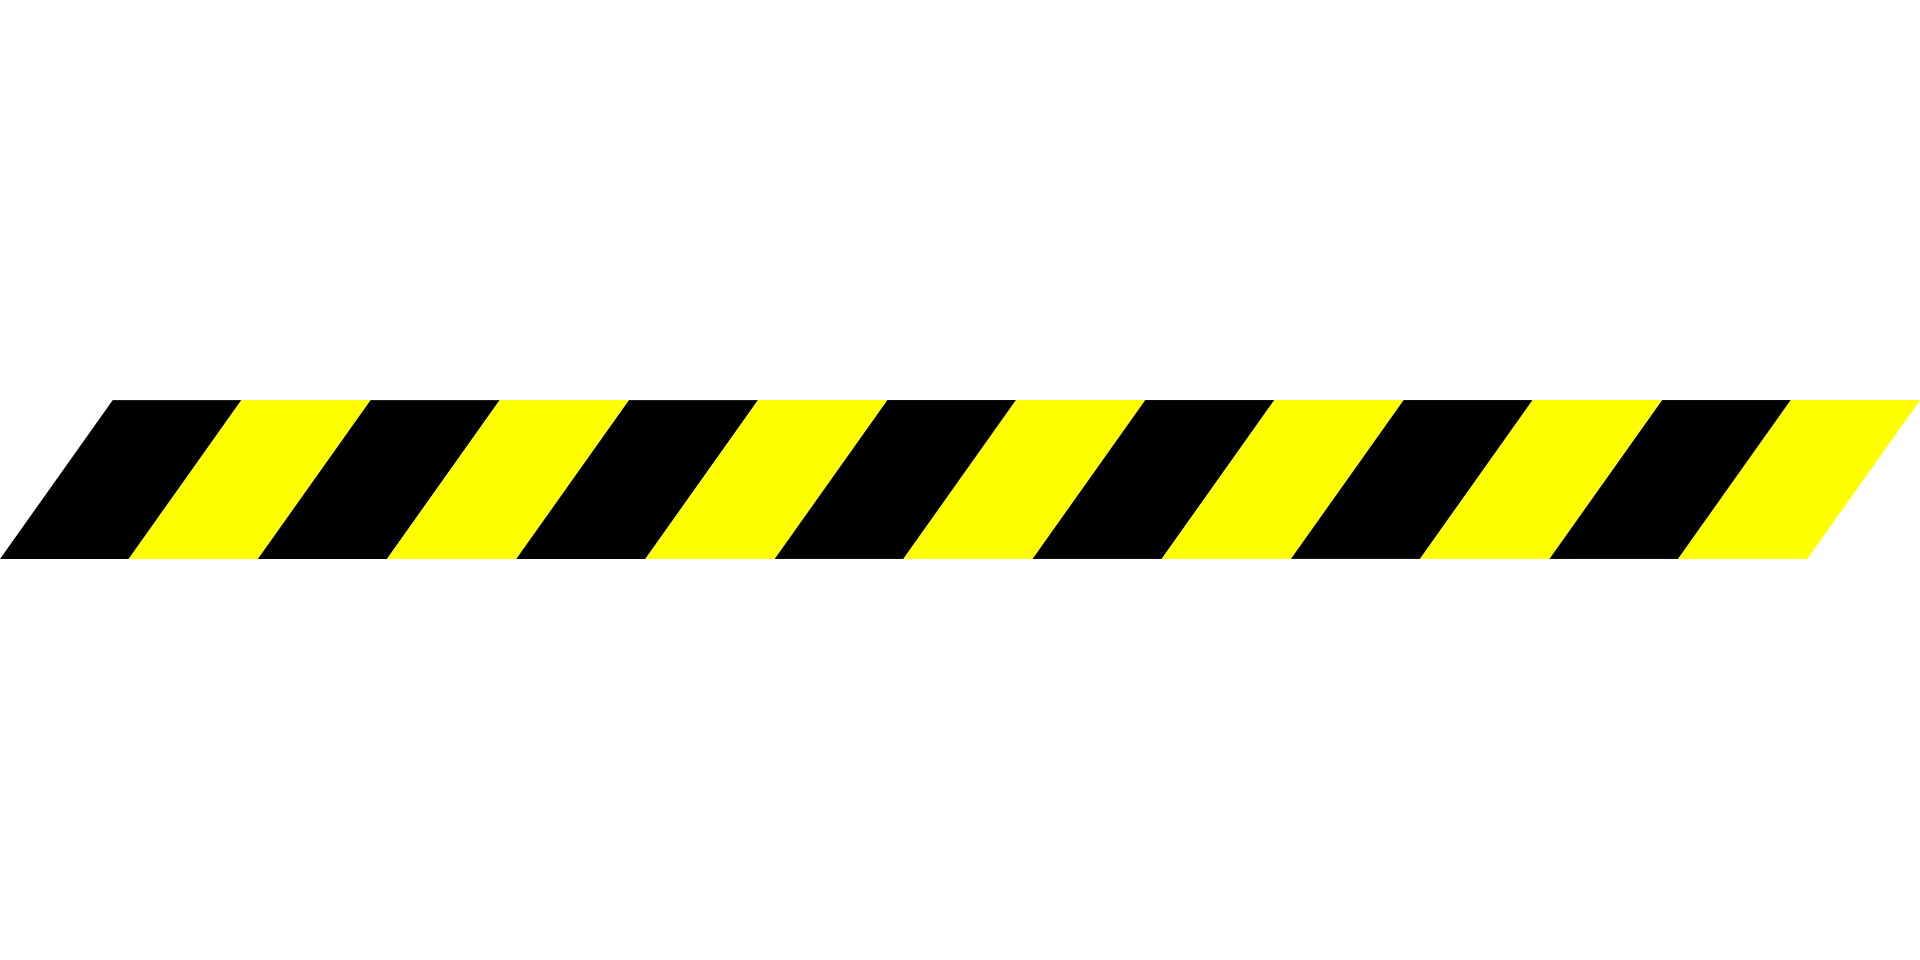 Caution tape clipart border vector freeuse Caution tape clipart clipart images gallery for free download ... vector freeuse